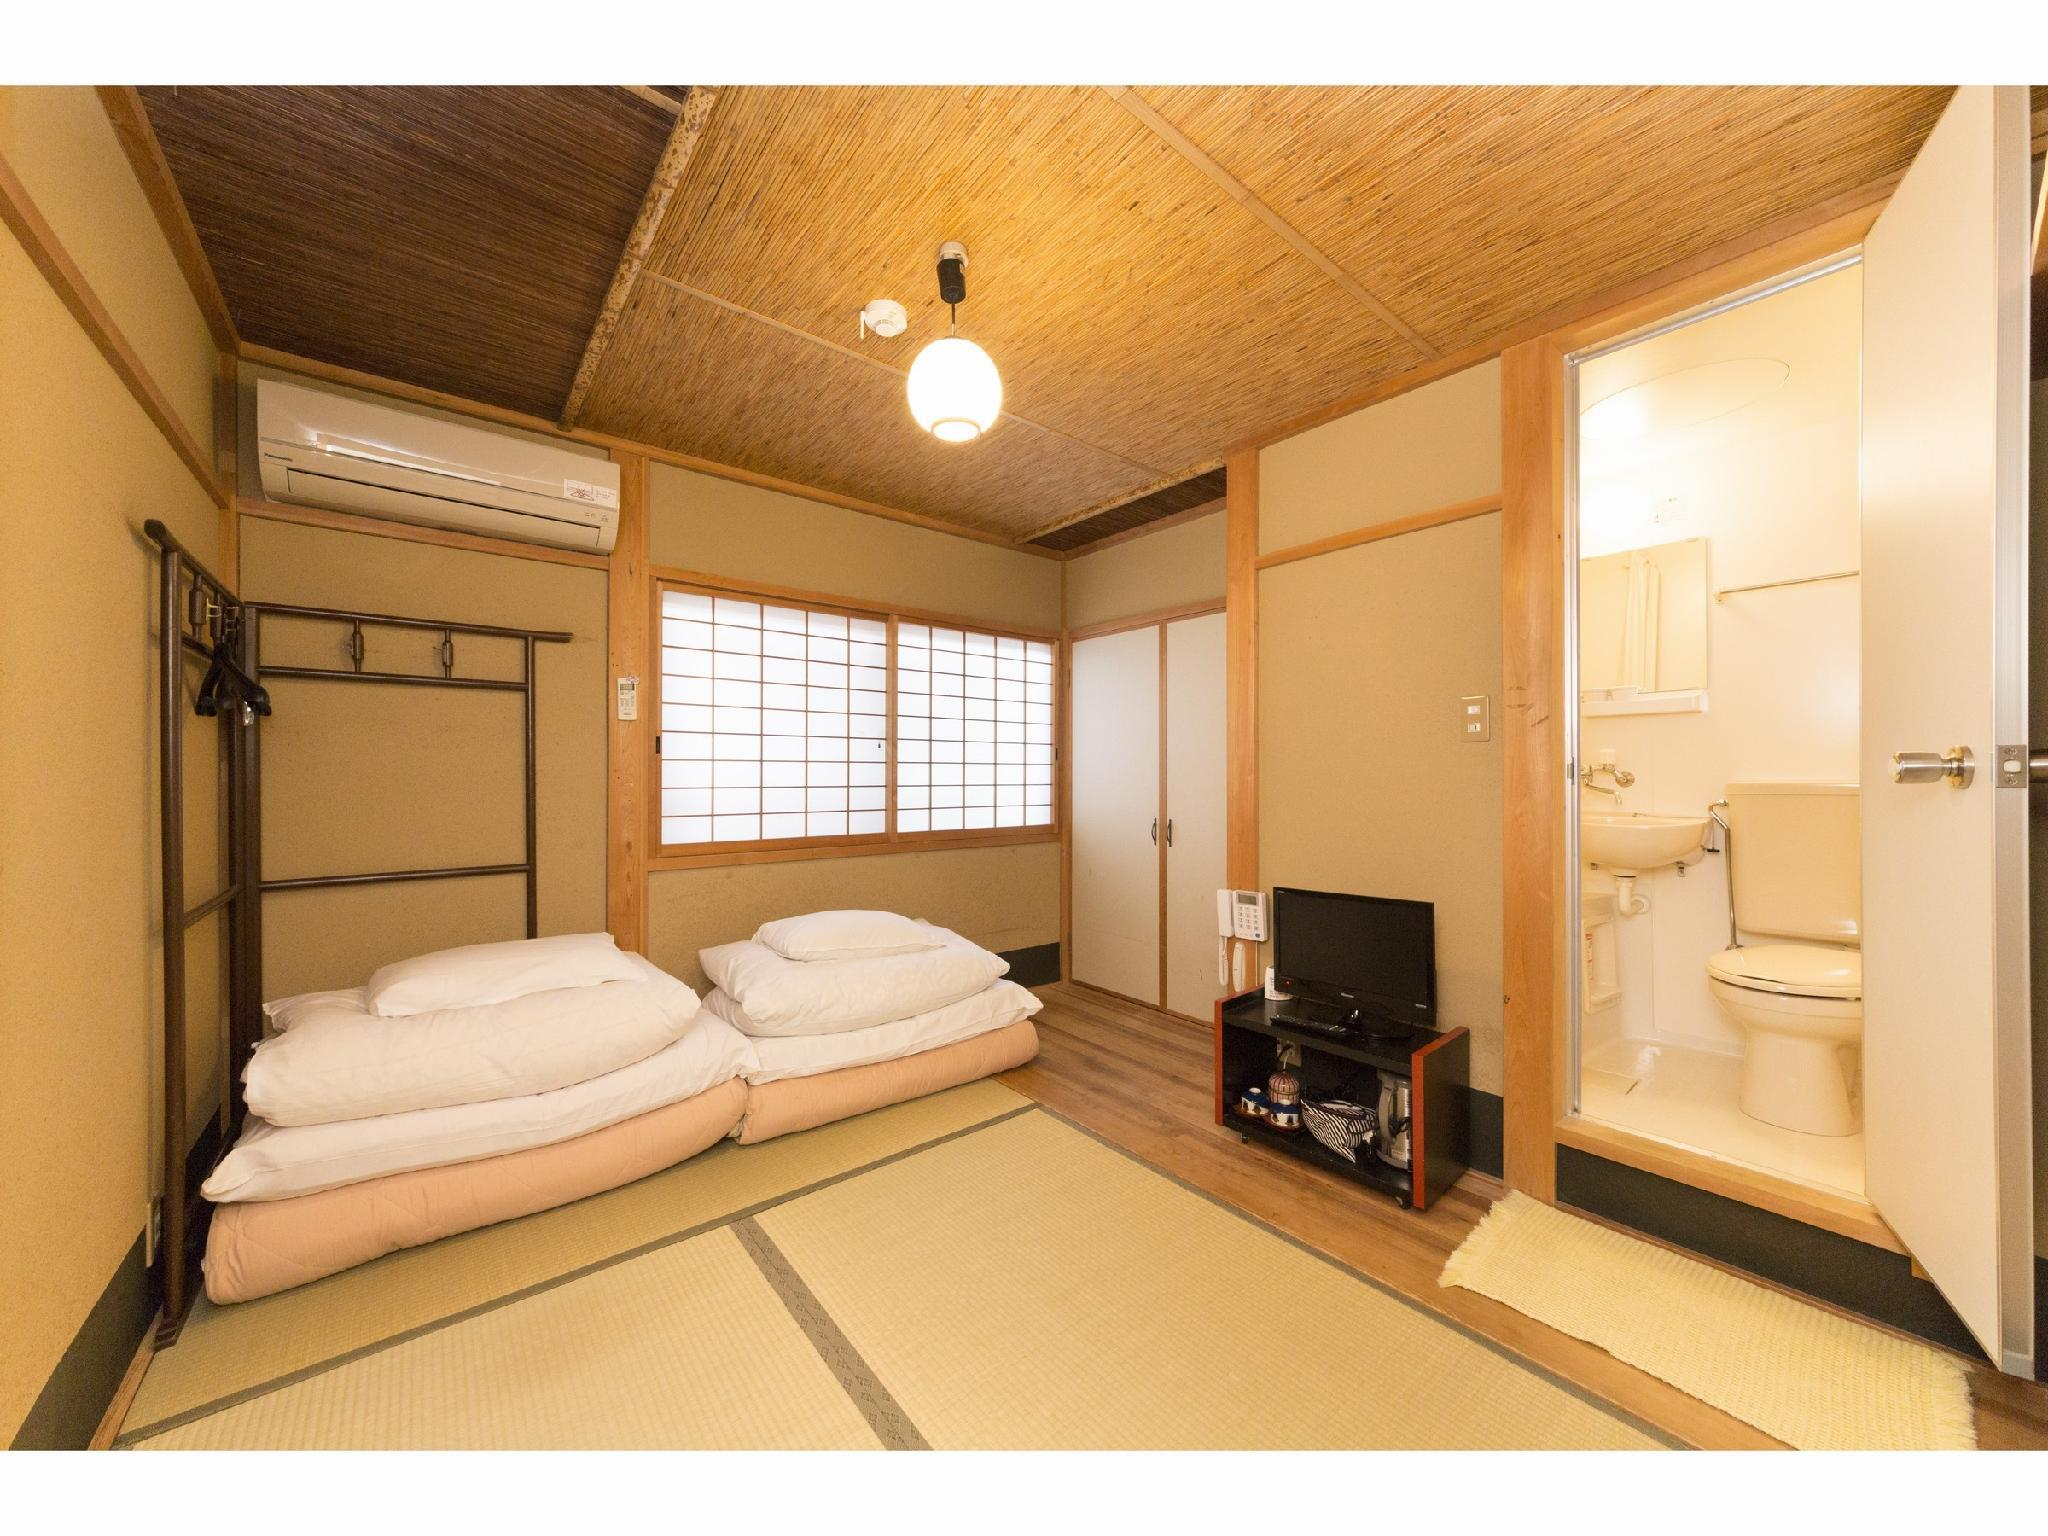 標準日式客房 - 可住2人/有浴缸 (Standard Japanese Room with Bath for 2 person)